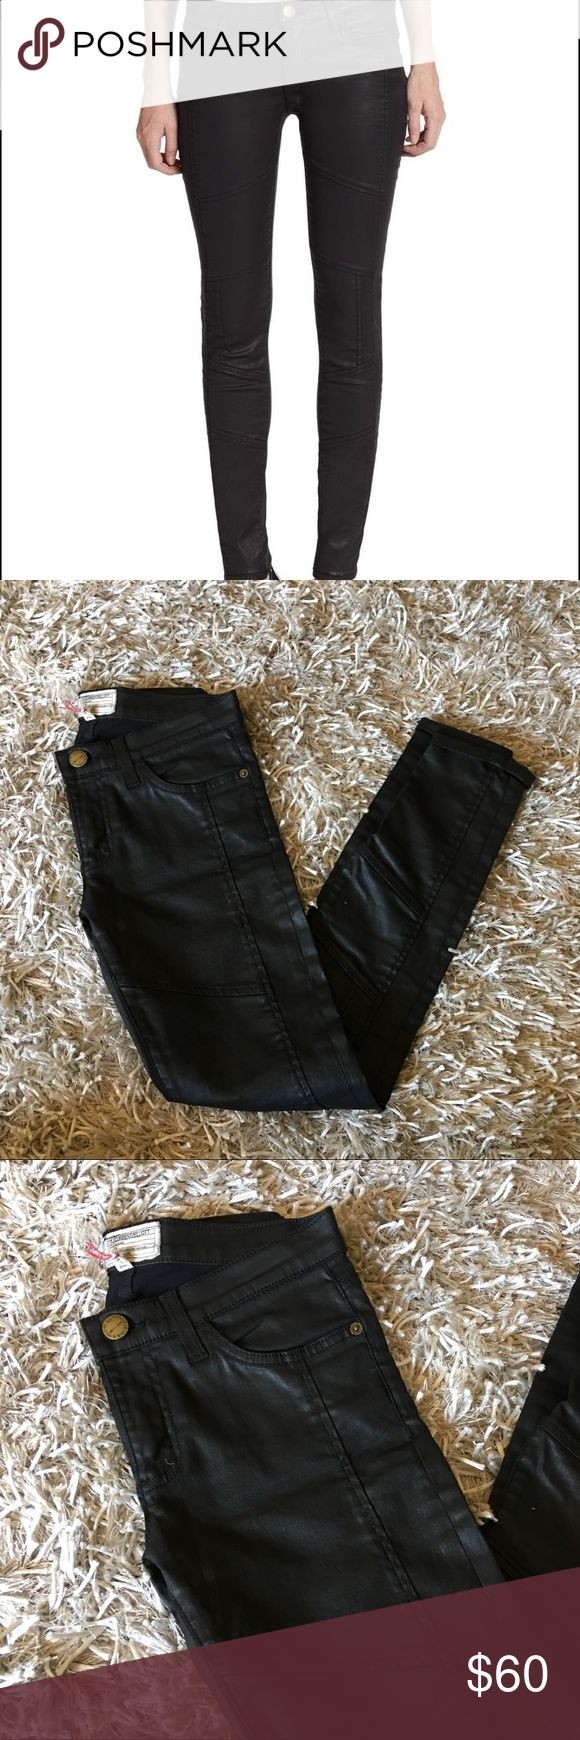 NEW! Current/Elliott Coated Leather Skinny Jeans NEW NEVER WORN- Current/Elliott The Sweeney Ankle Skinny, low waist, gold accents Current/Elliott Jeans Skinny